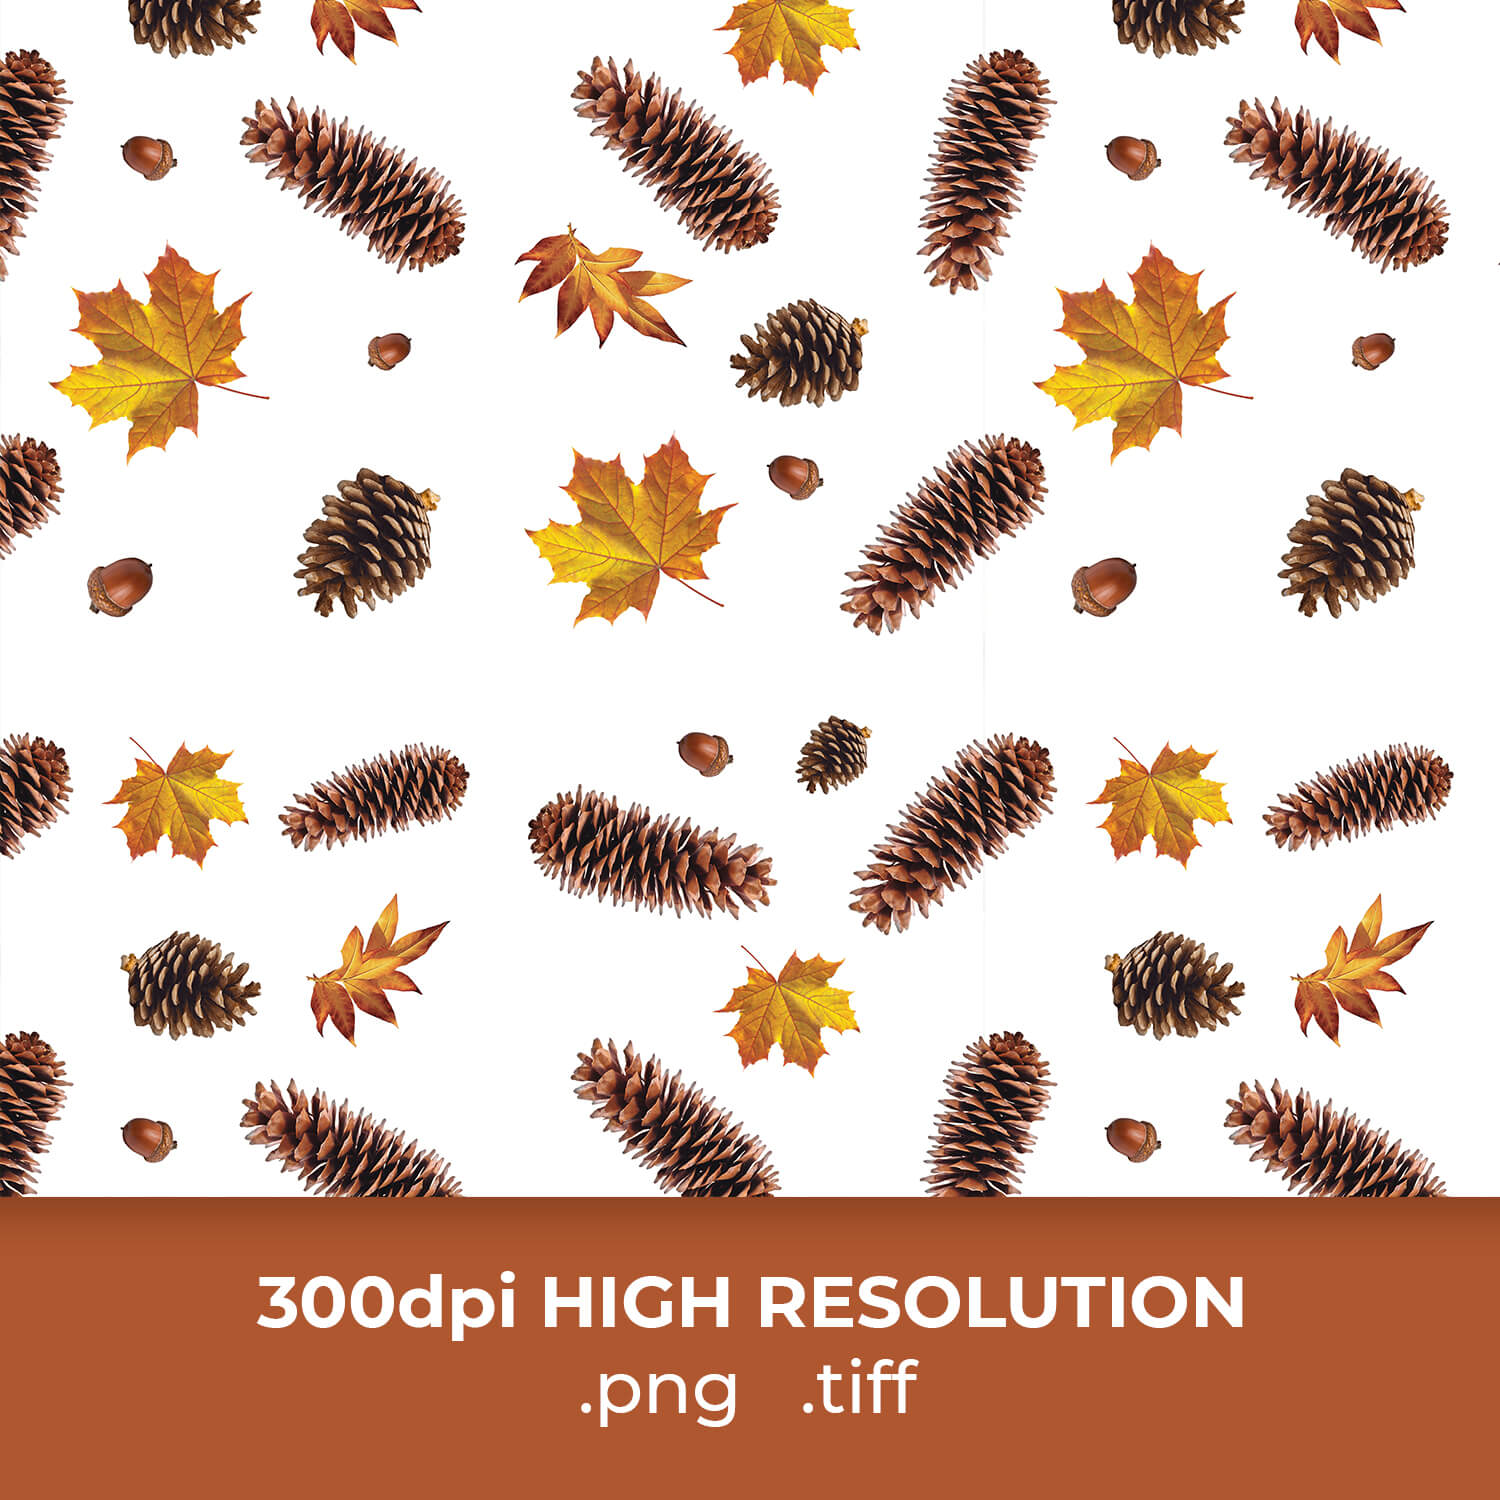 Fir Cones Thanksgiving Pattern cover image.